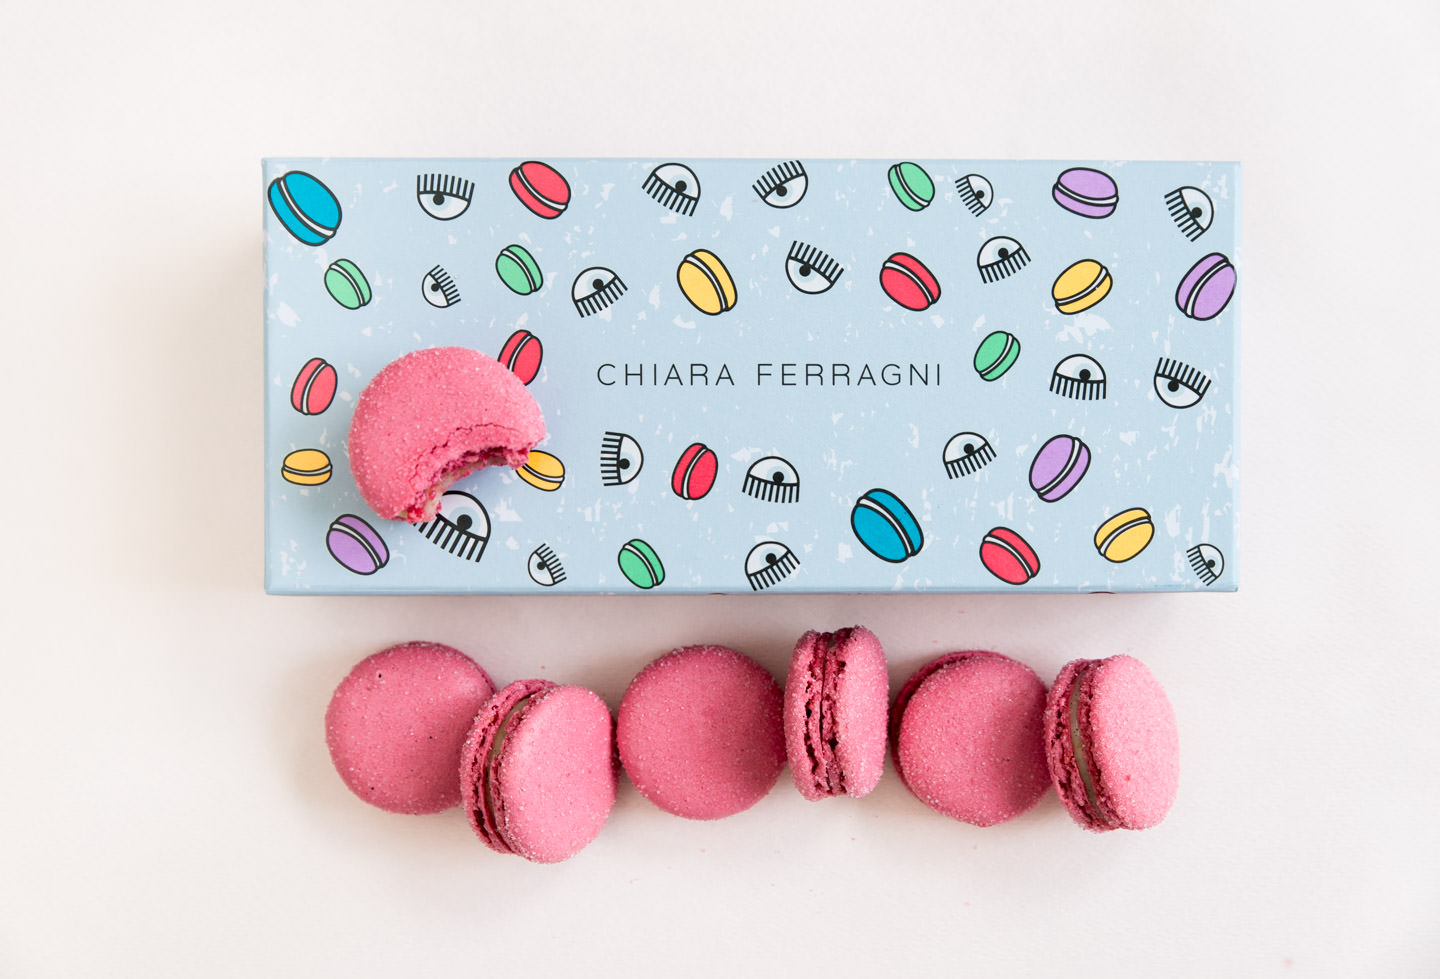 Blog-Mode-And-The-City-lifestyle-cinq-petites-choses-188-laduree-chiara-ferragni